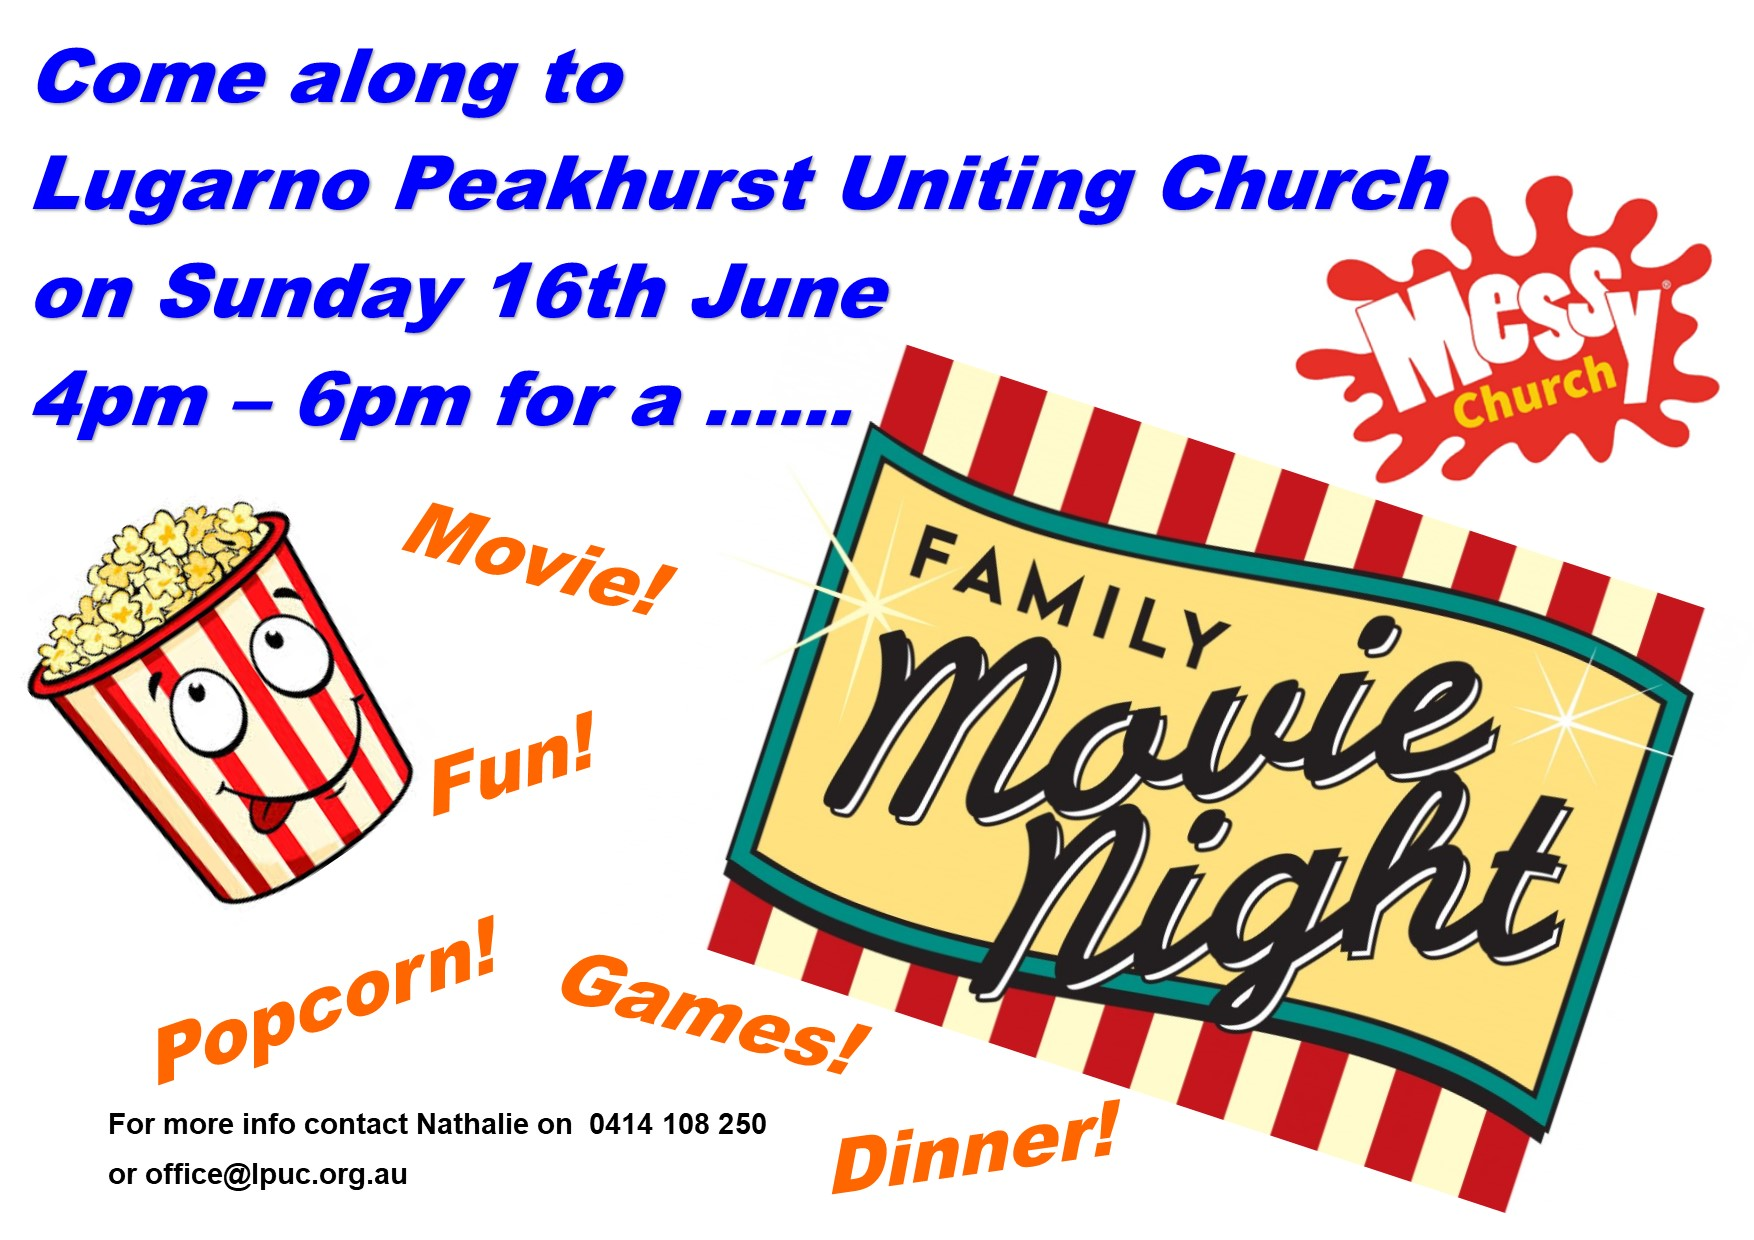 Messy Church Sunday 16th June 2019 - Family Movie Night @ Lugarno Peakhurst Uniting Church